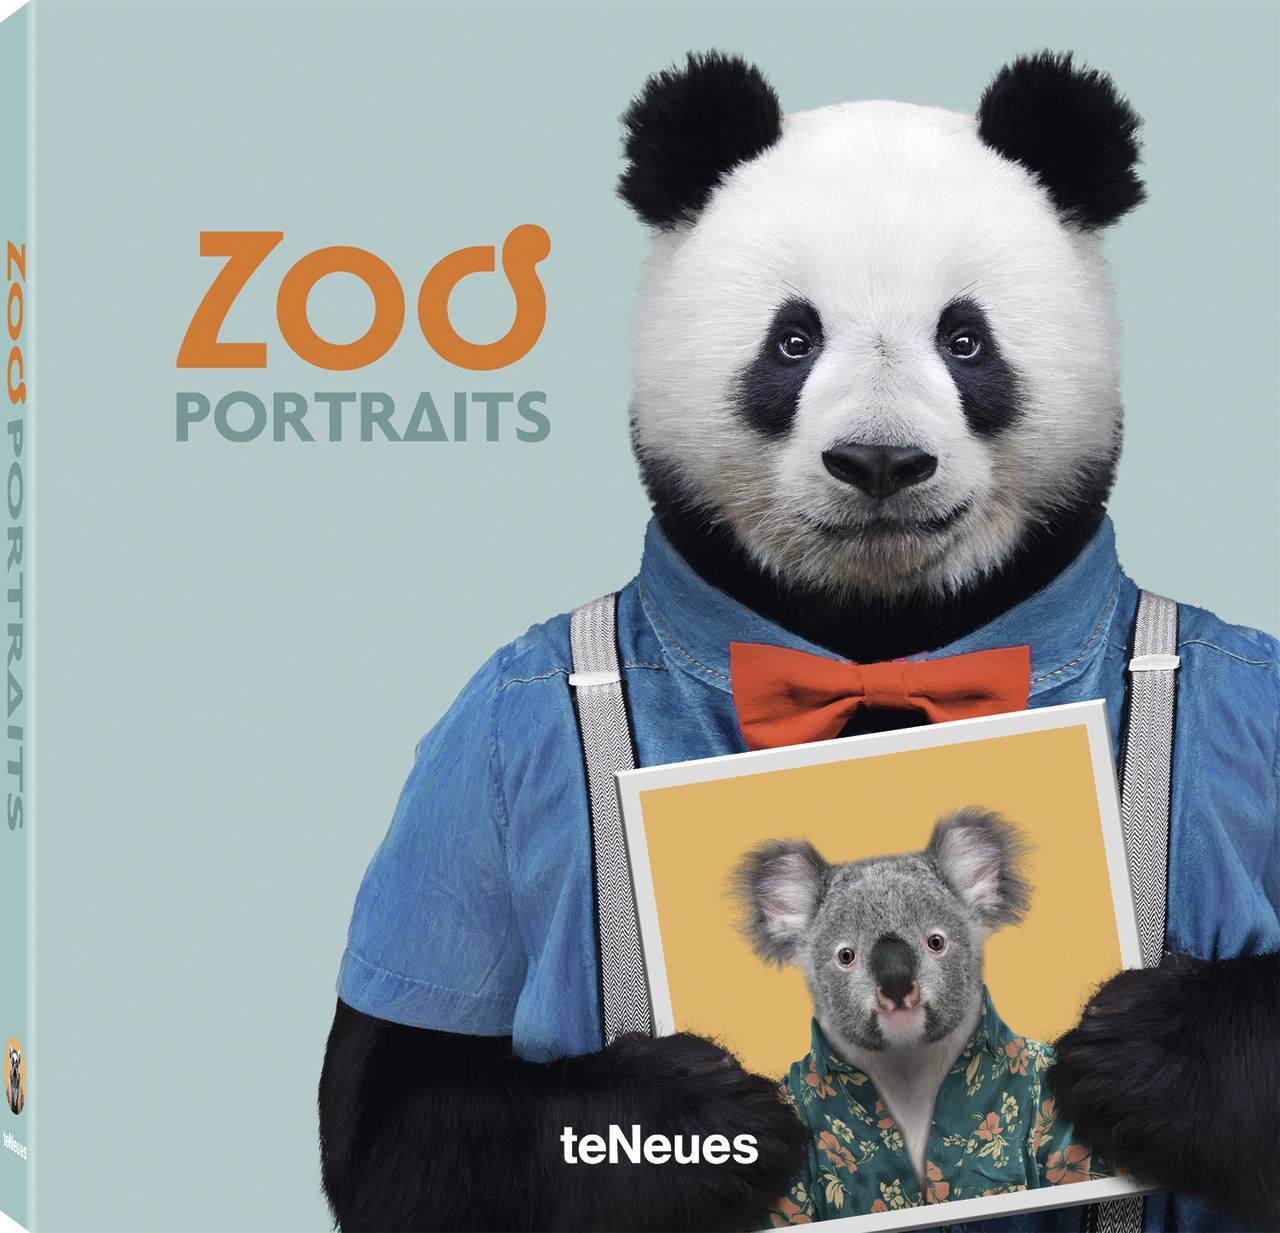 © ZOO PORTRAITS by Yago Partal, published by teNeues, www.teneues.com, BAO THE GIANT PANDA © 2017 Zoo Portraits S. L. All rights reserved. www.zooportraits.com